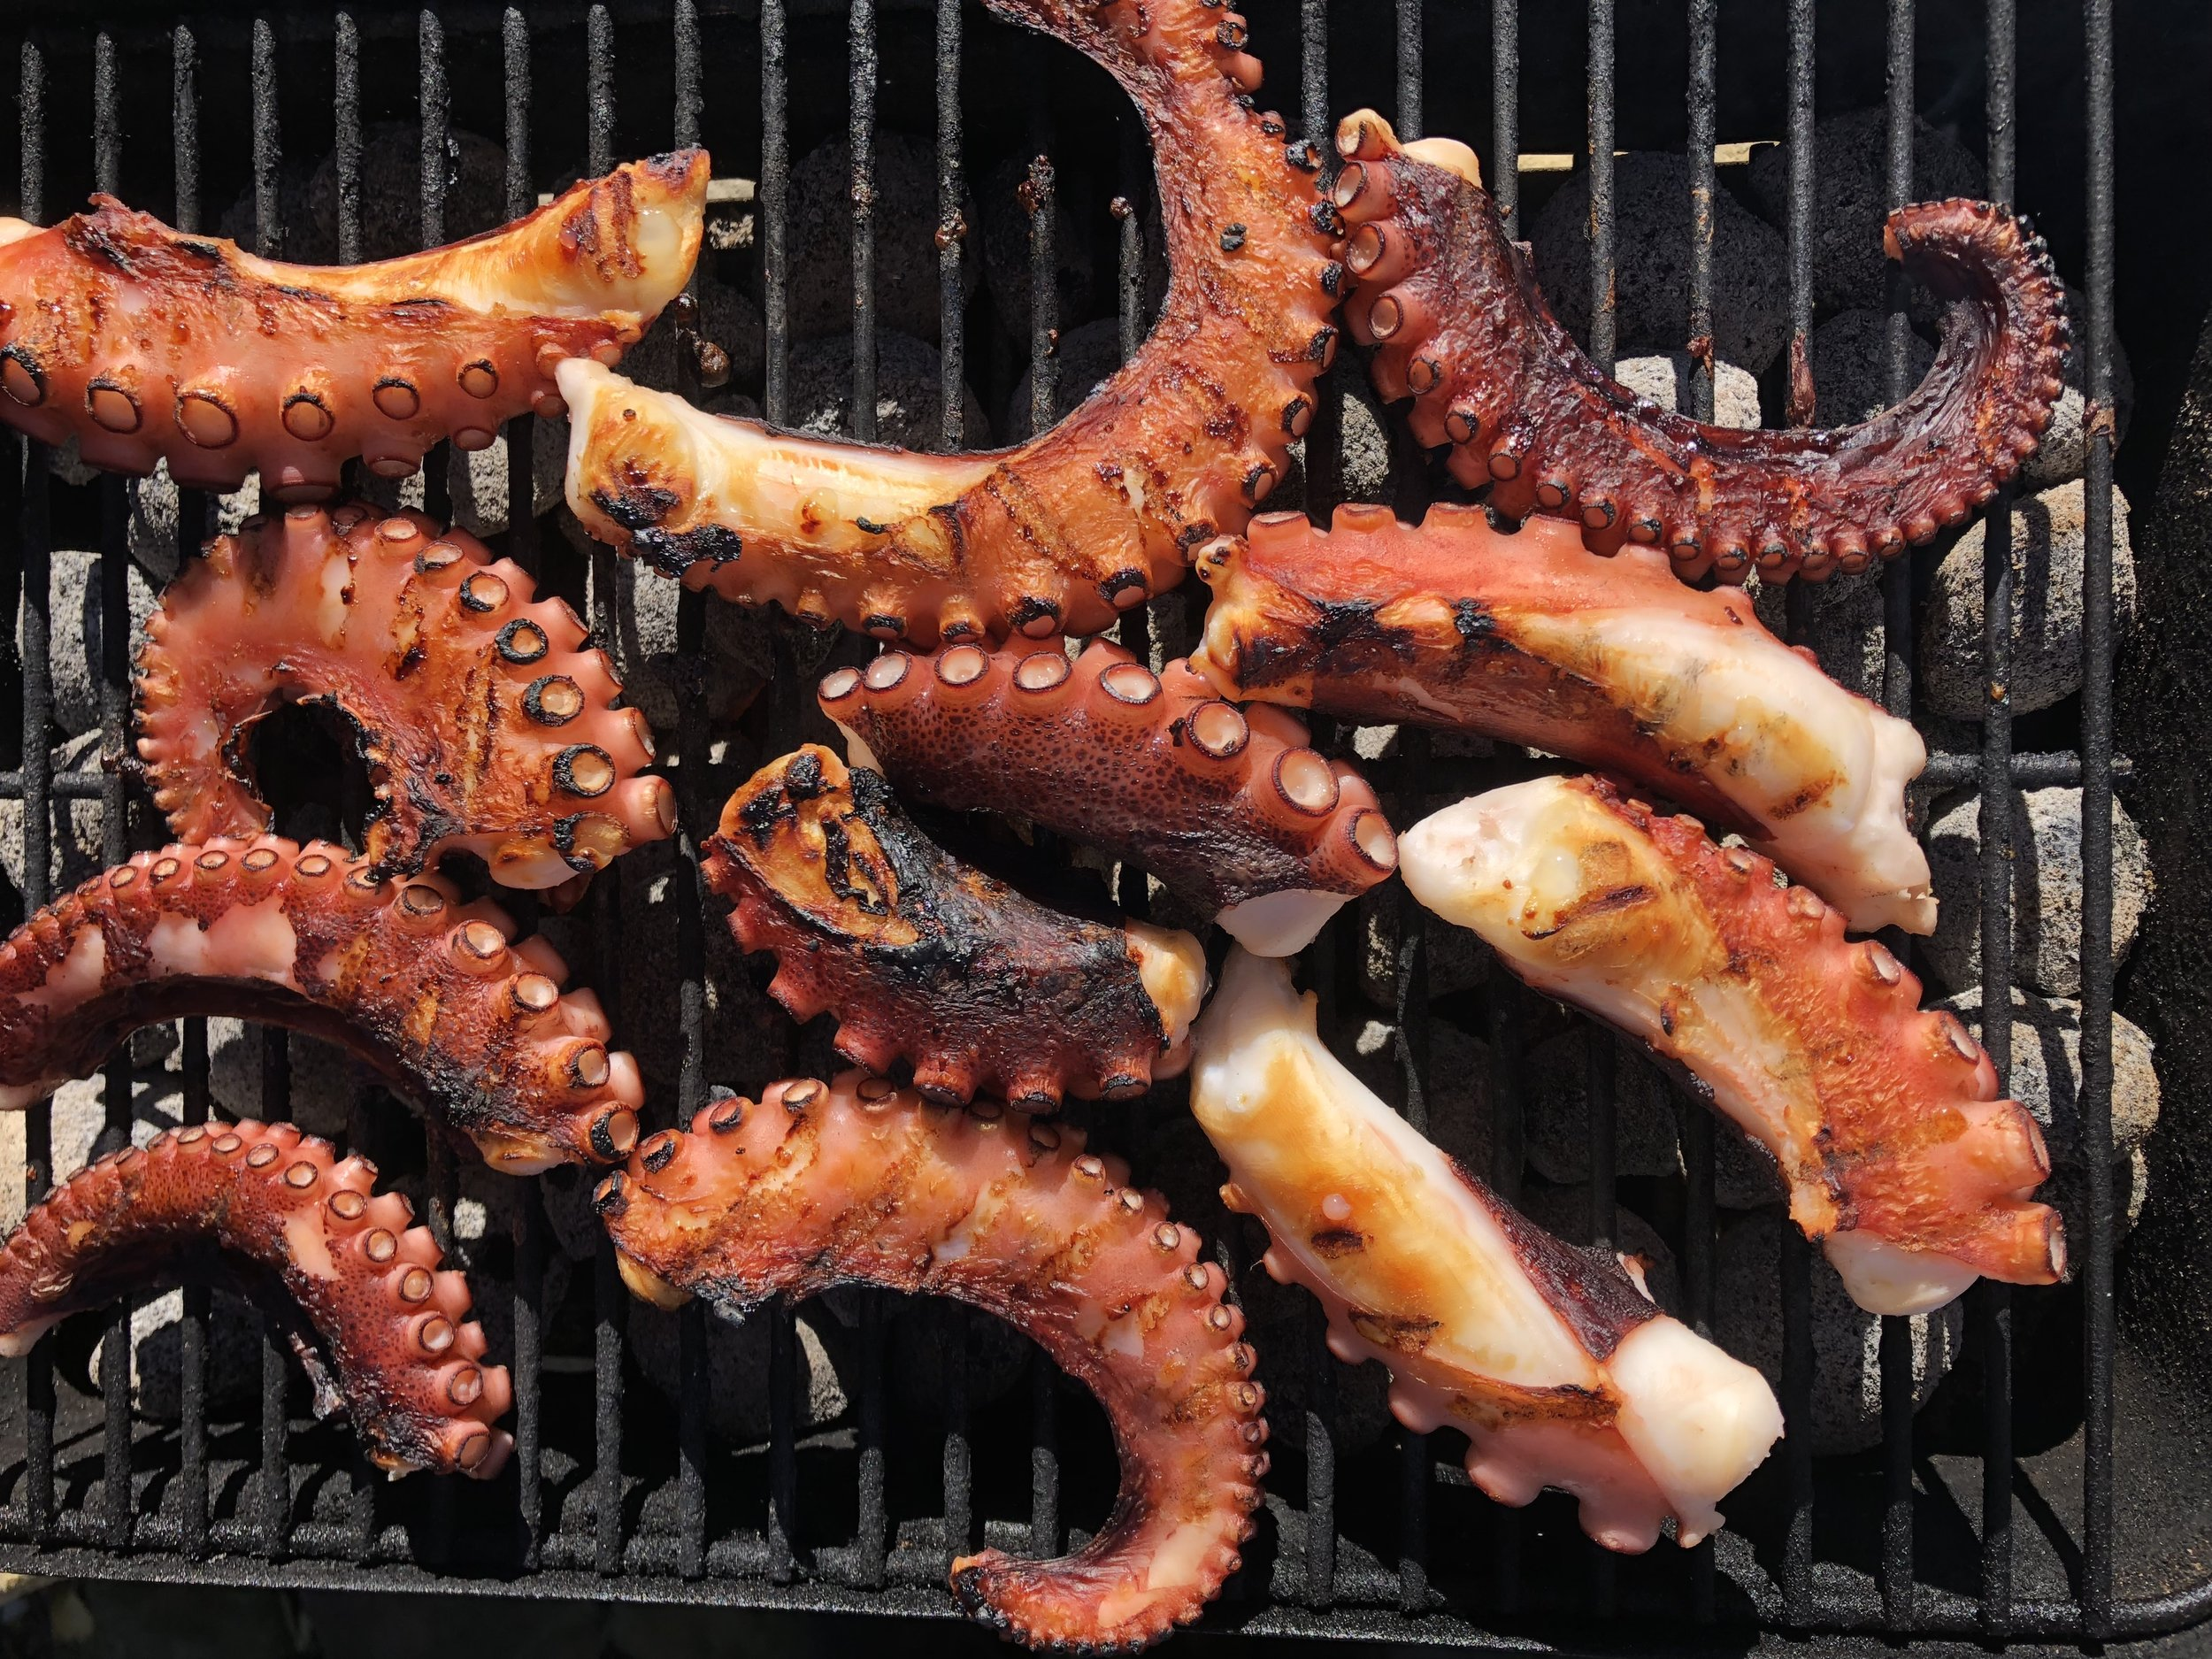 Grilled octopus...yum